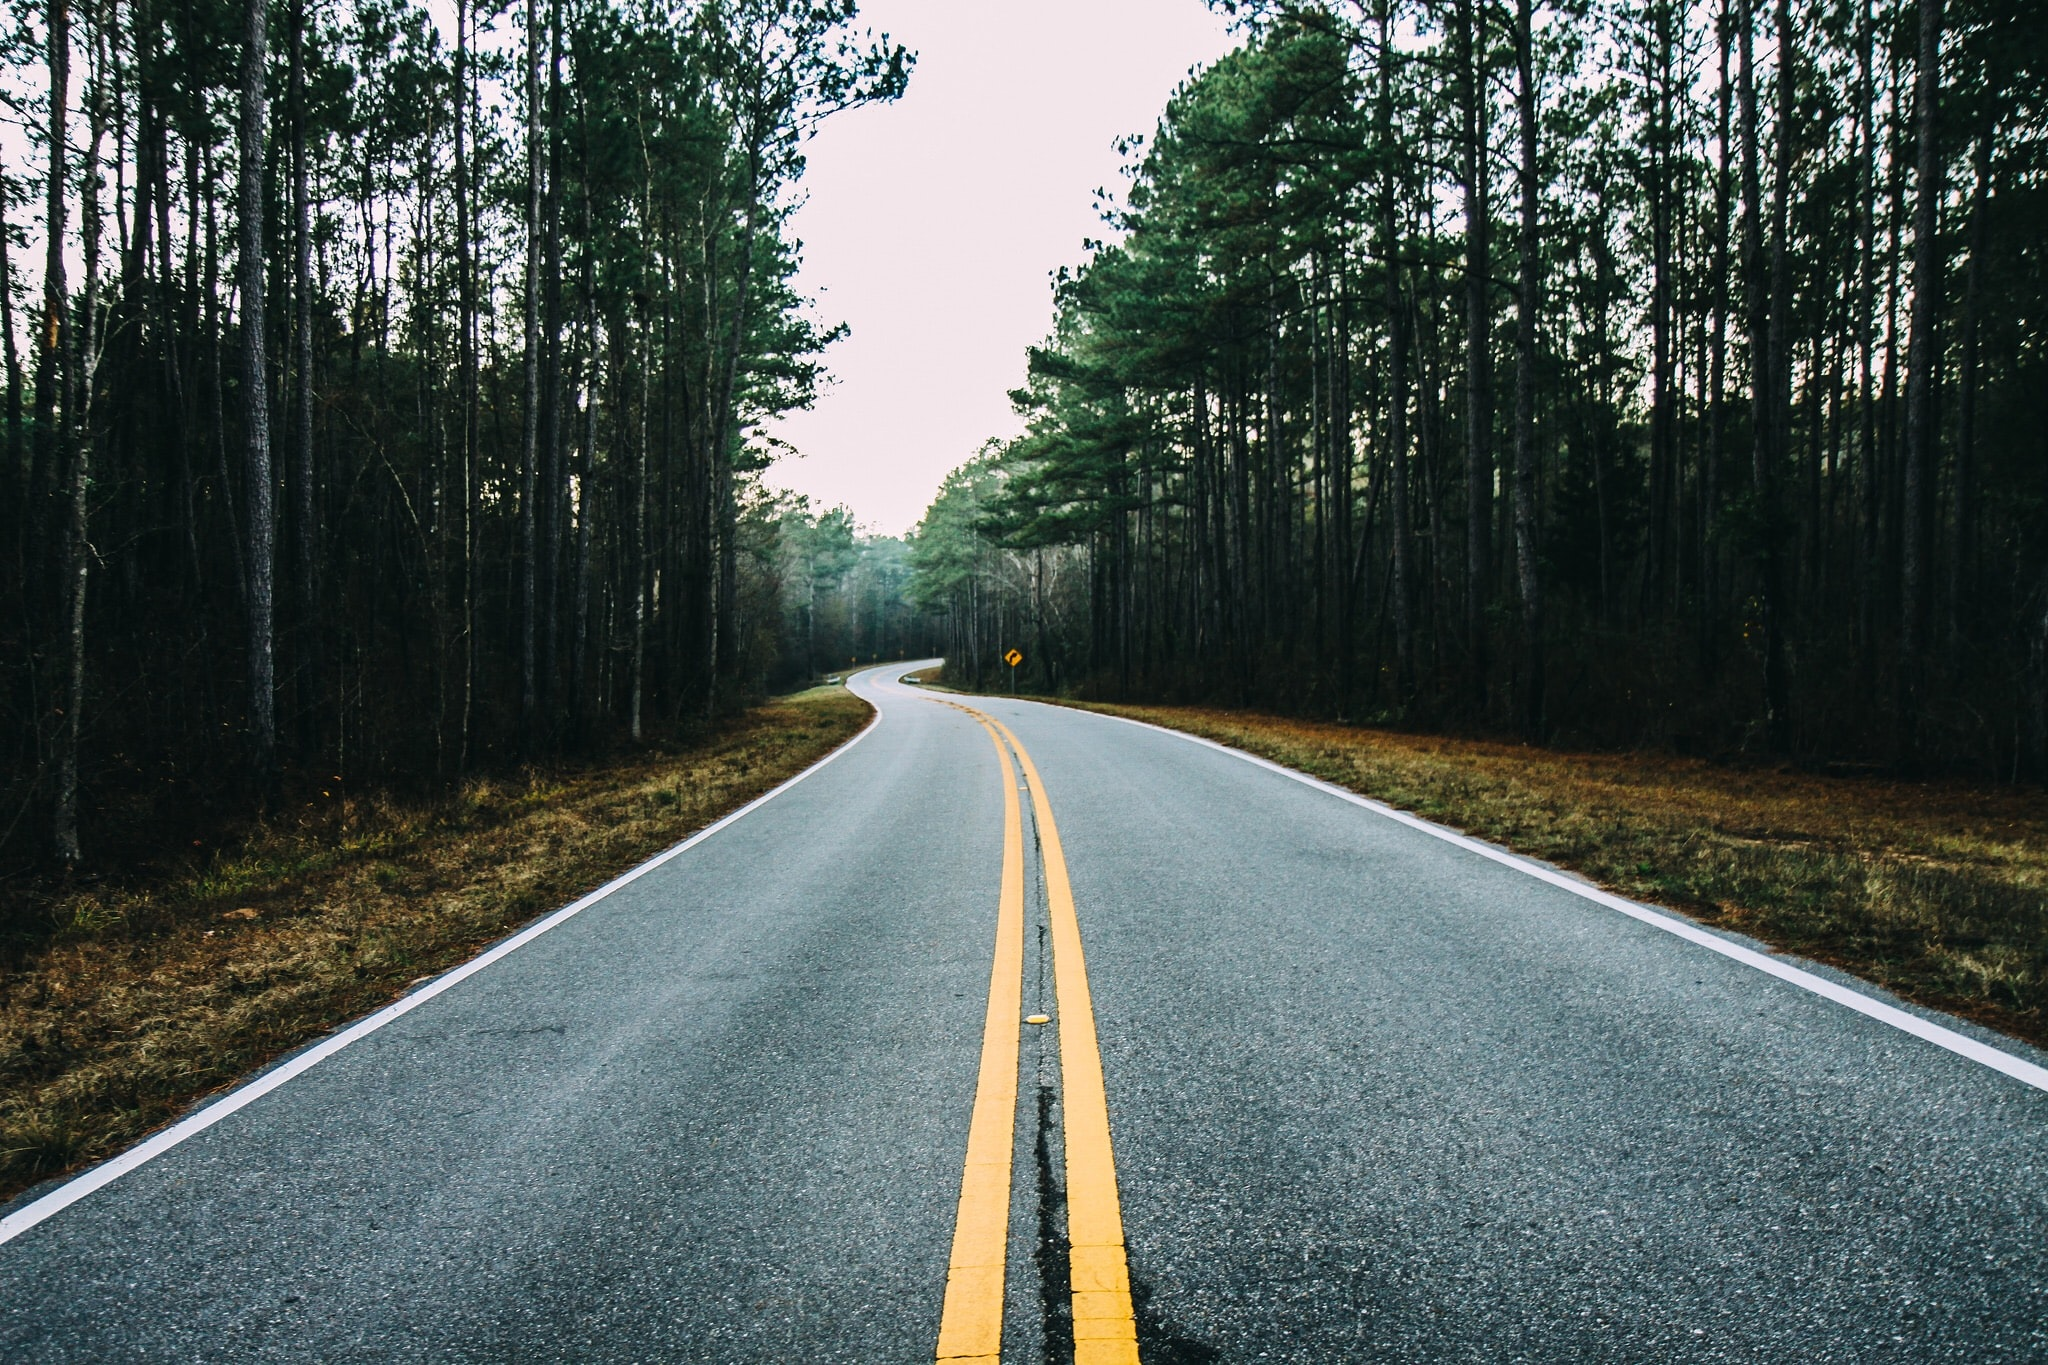 A moody winding forest road